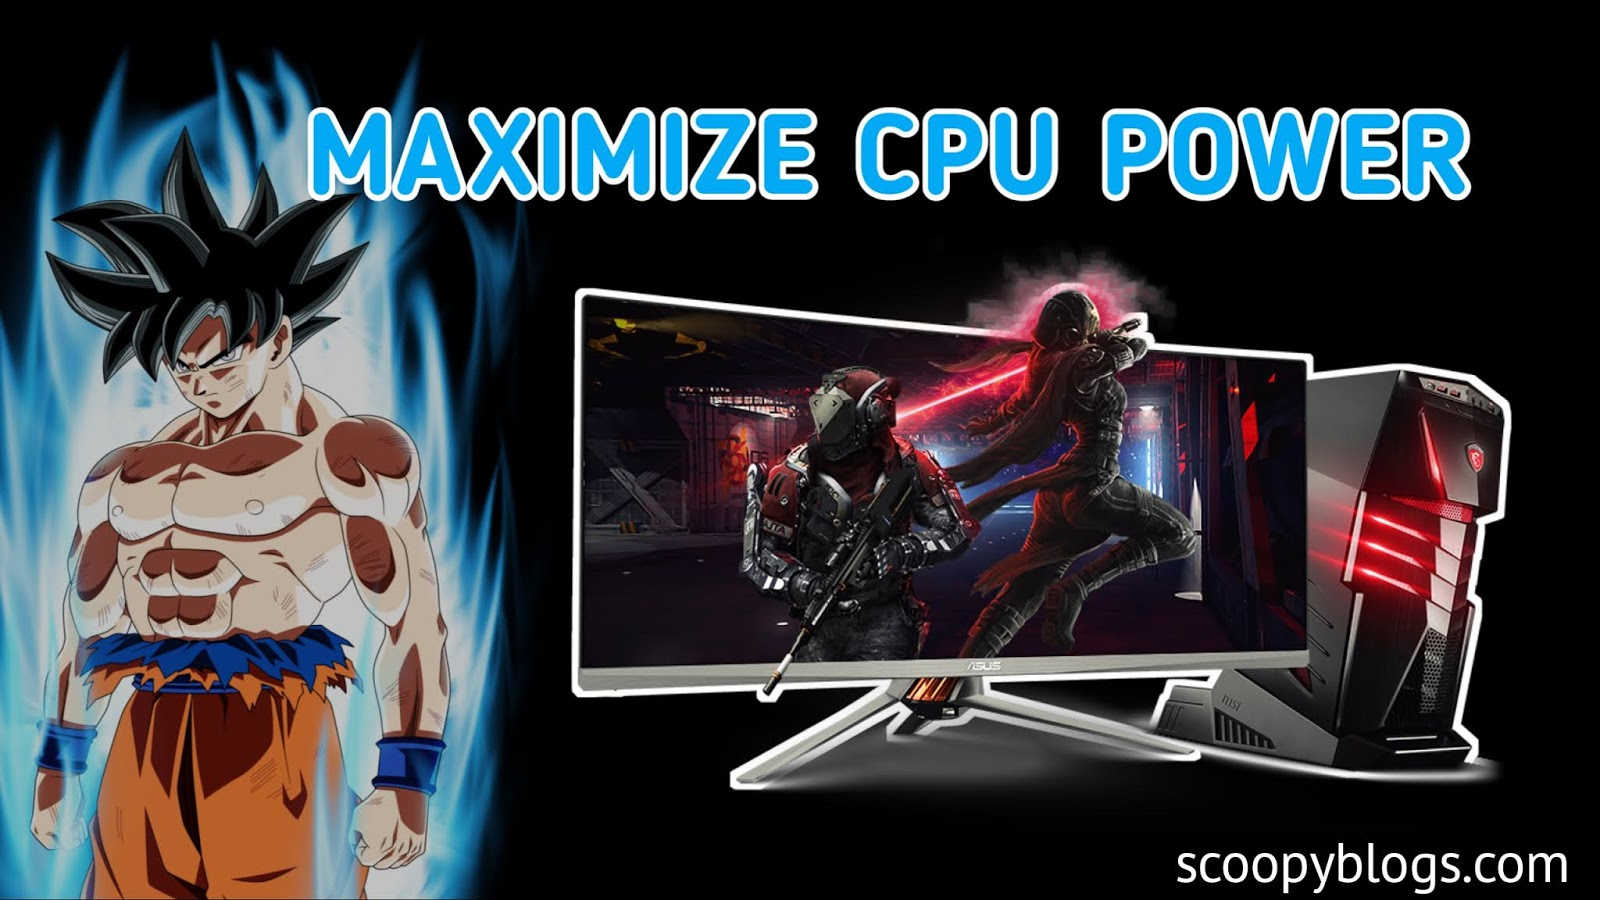 Maximize CPU Power and get better performance